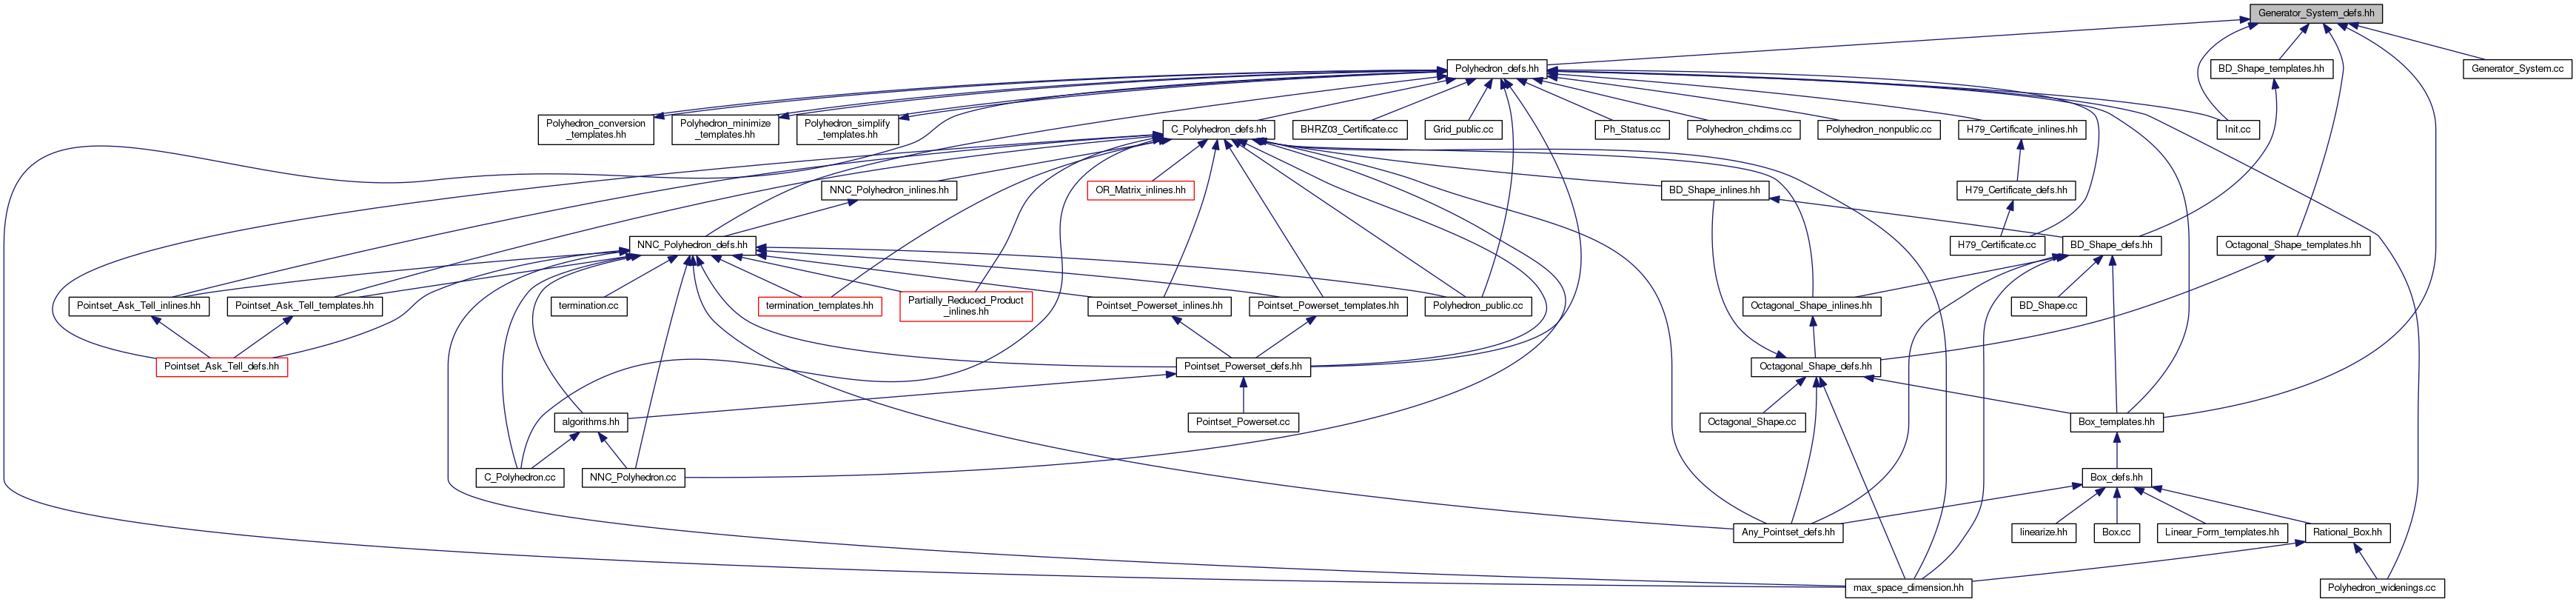 Ppl Generator System Defshh File Reference Algorithm Diagram This Graph Shows Which Files Directly Or Indirectly Include